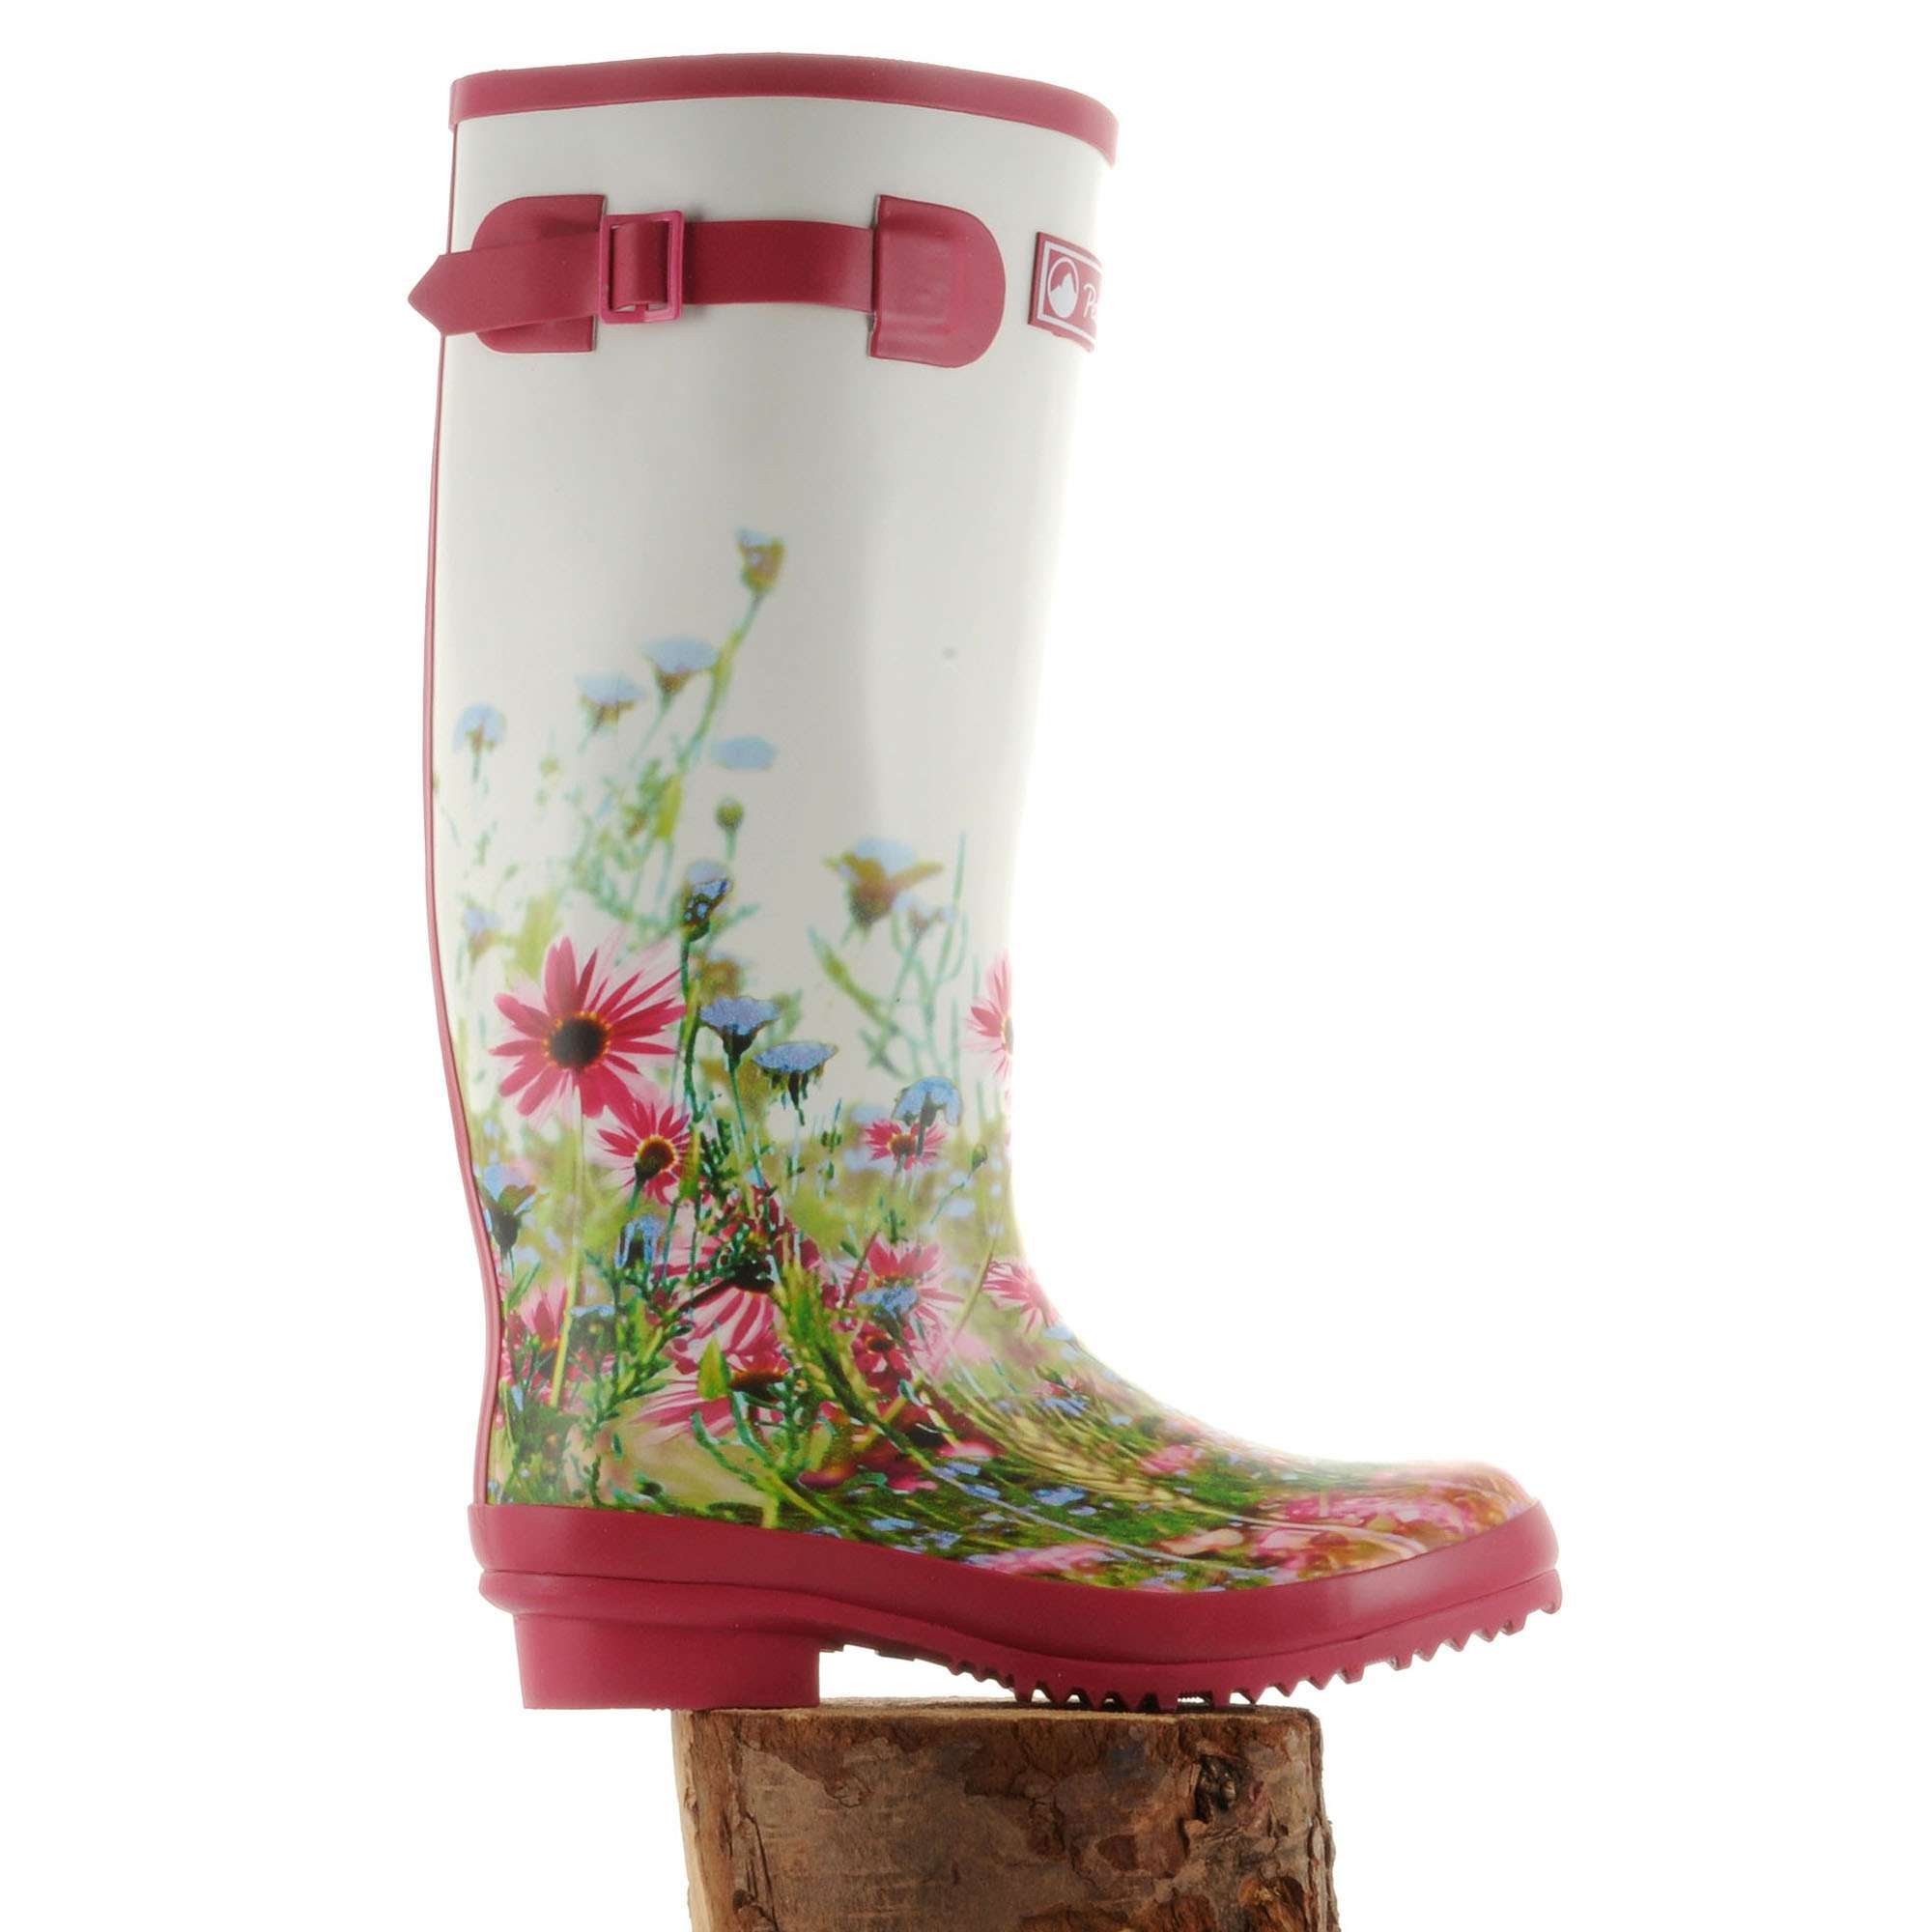 PETER STORM Women's Floral Wellies